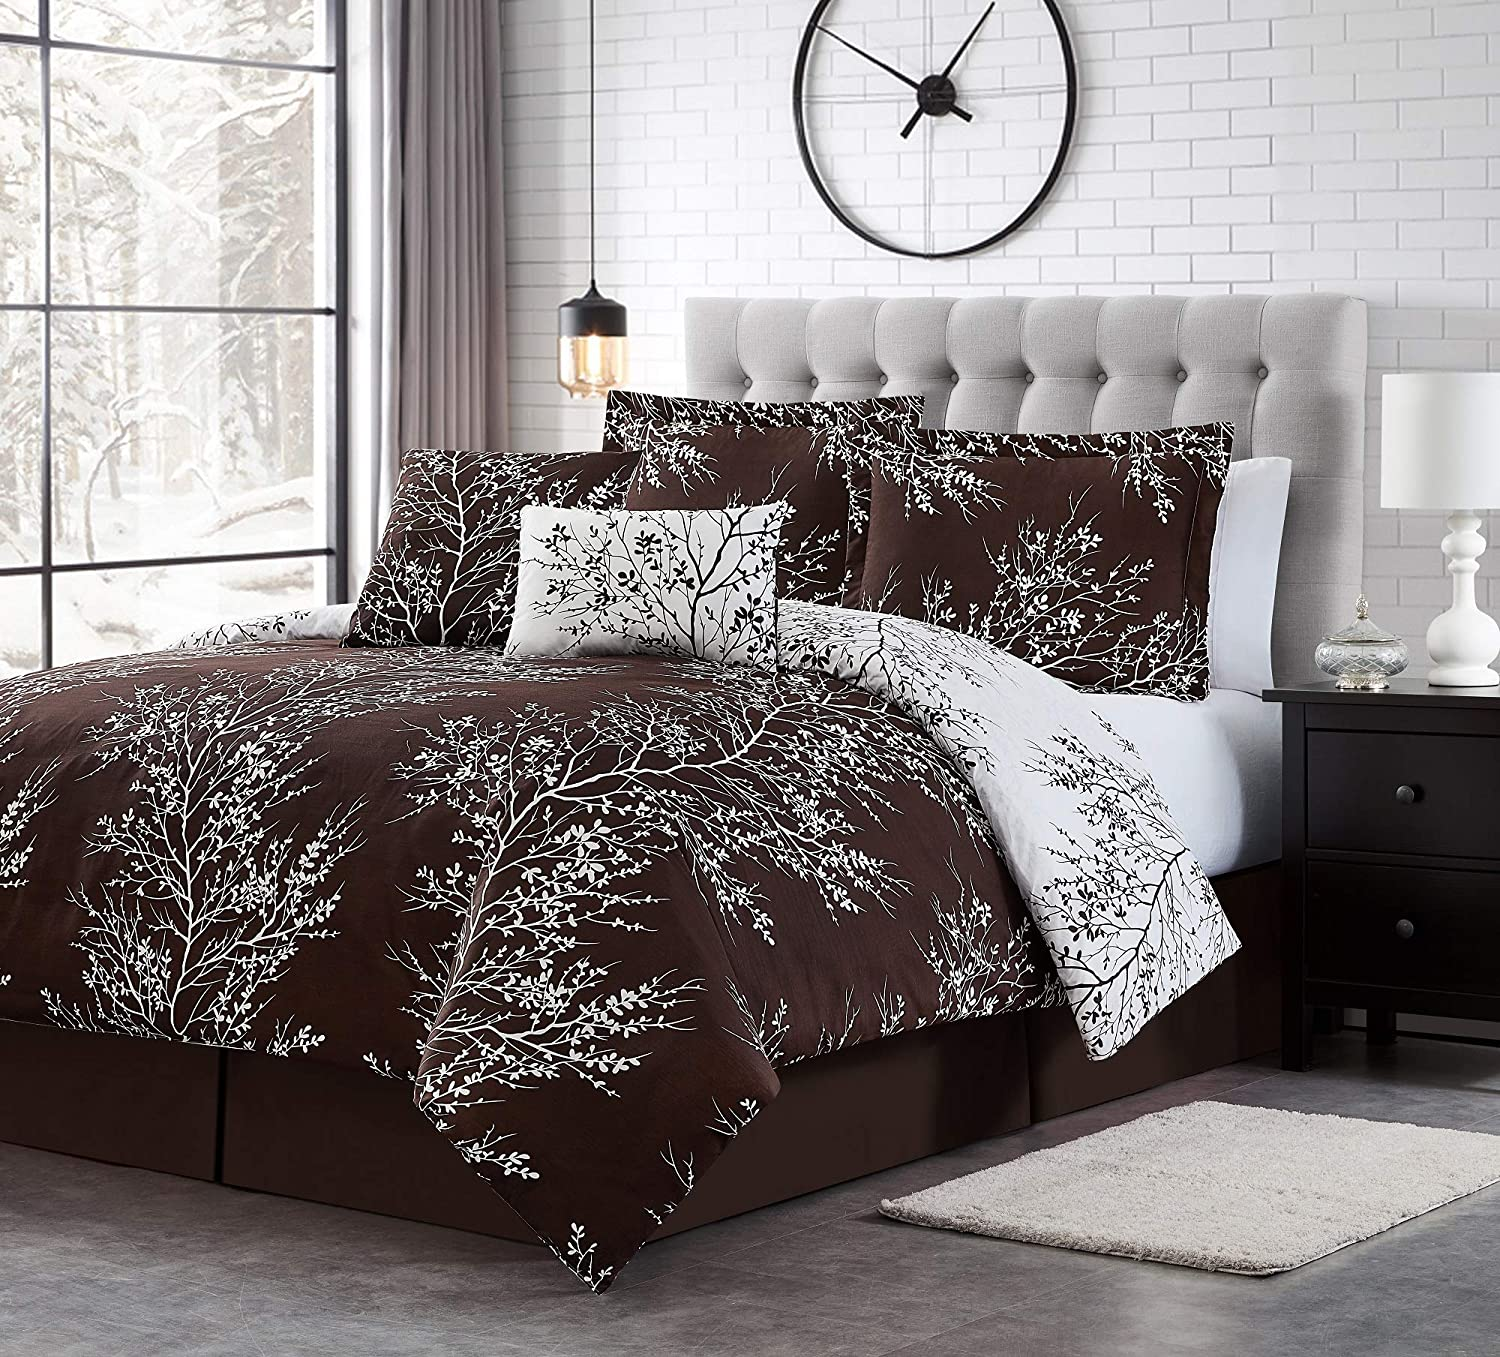 Spirit Linen 6pc Warm and Cozy Comforter Set Platinum Bedding Collection Baby Soft Texture Plush Bed Blanket (Chocolate, Queen)